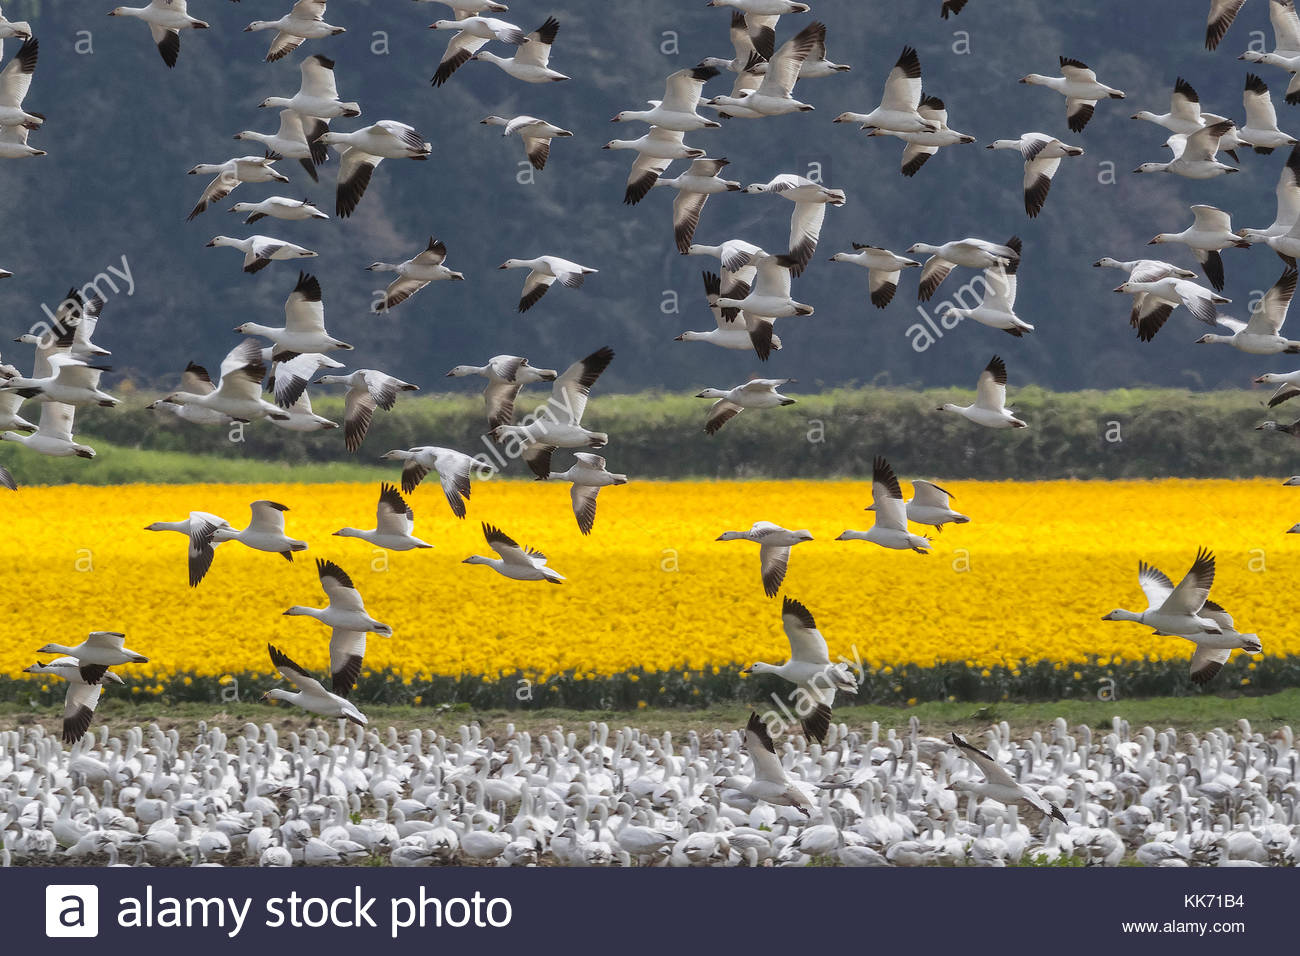 A large flock of snow geese (Chen caerulescens) settle near a field of daffodils in La Conner, Washington. - Stock Image